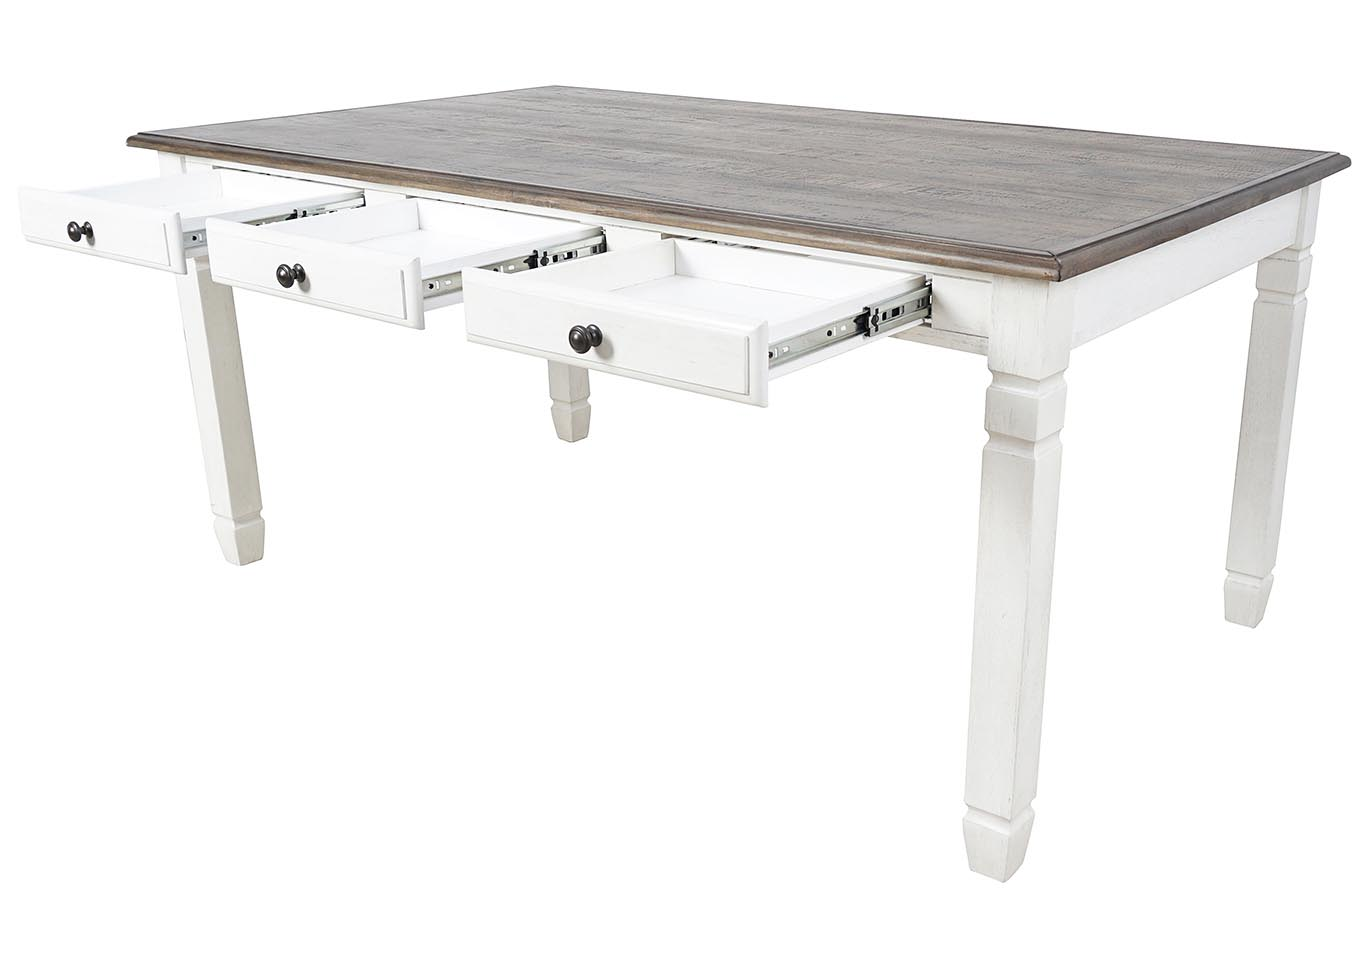 Prairie Point White Rectangular Dining Table w/6 Drawers,New Classic